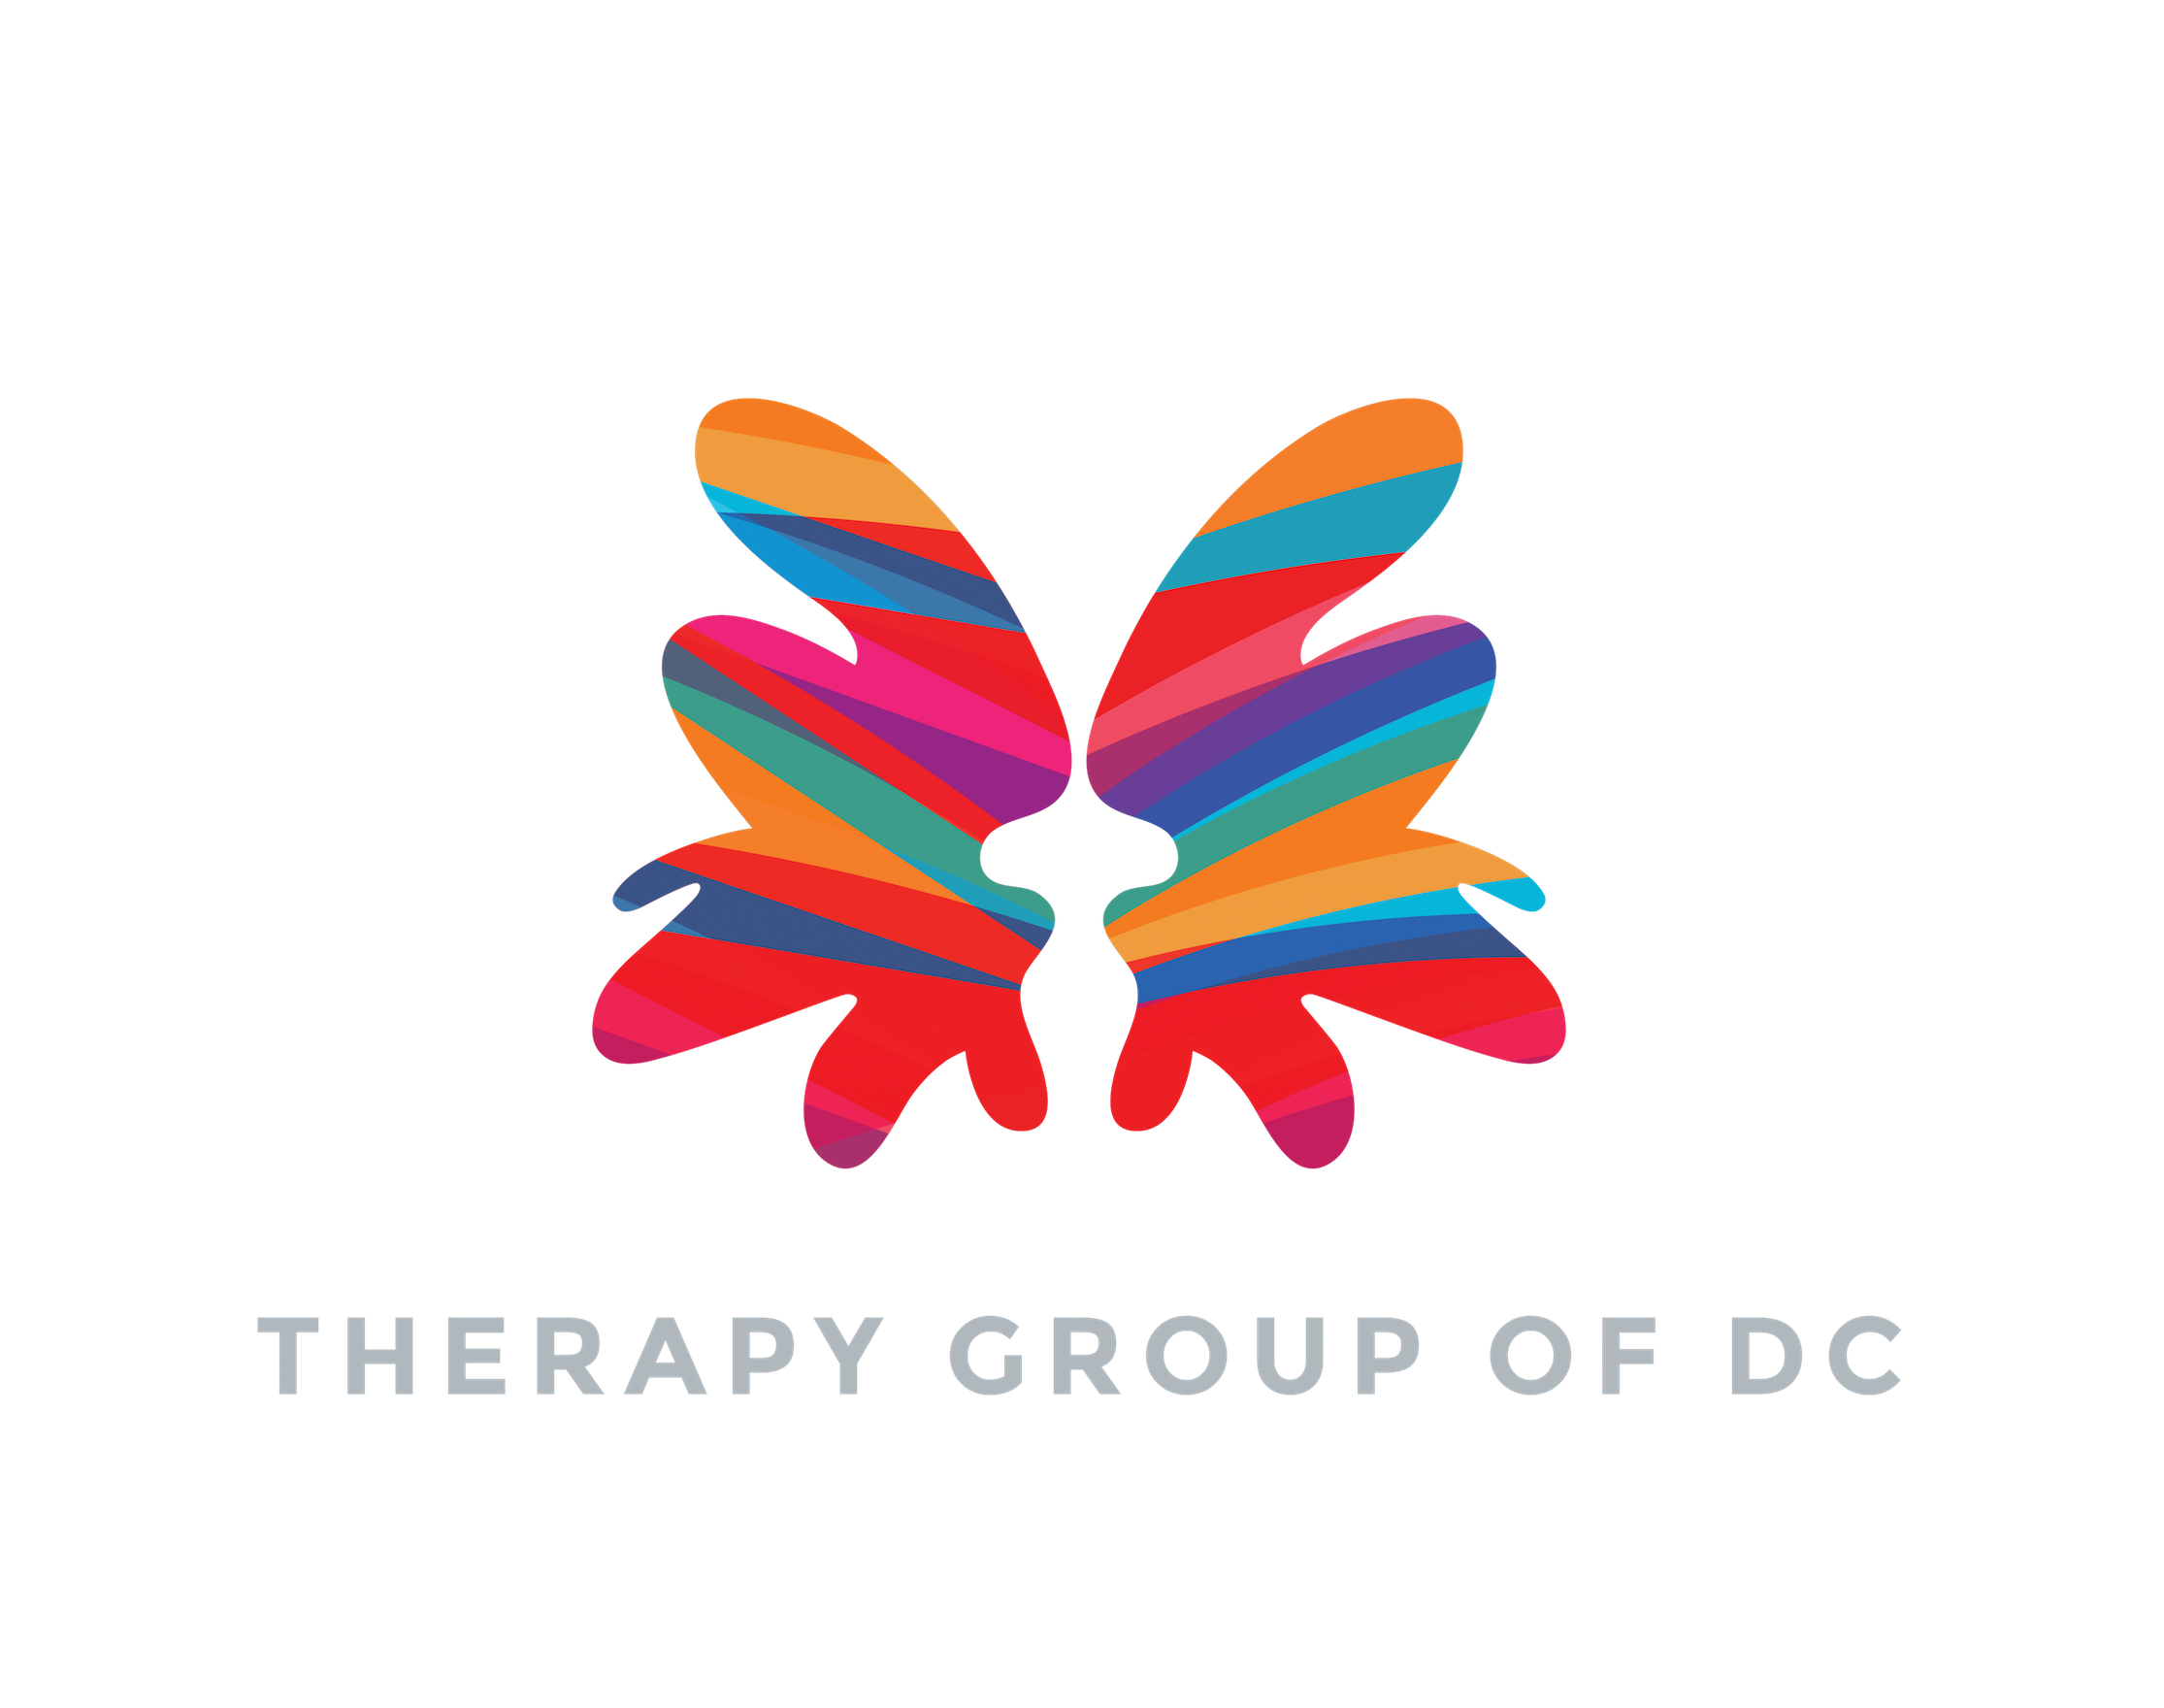 Therapy Group DC logo